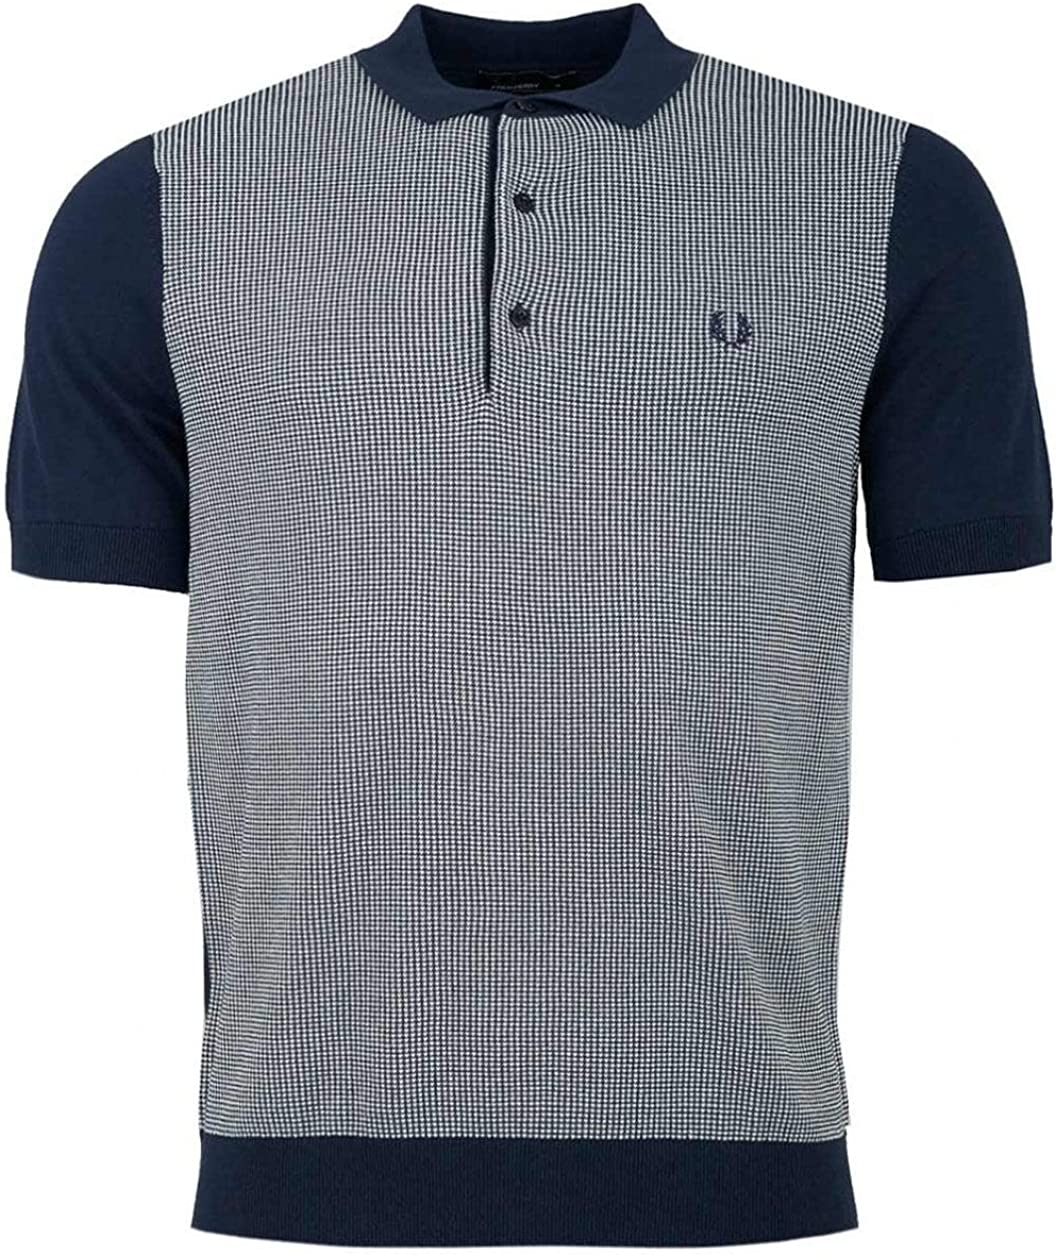 B07N7TYQ4C Fred Perry Men's Two-Color Knitted Shirt 71W73a%2BGcIL